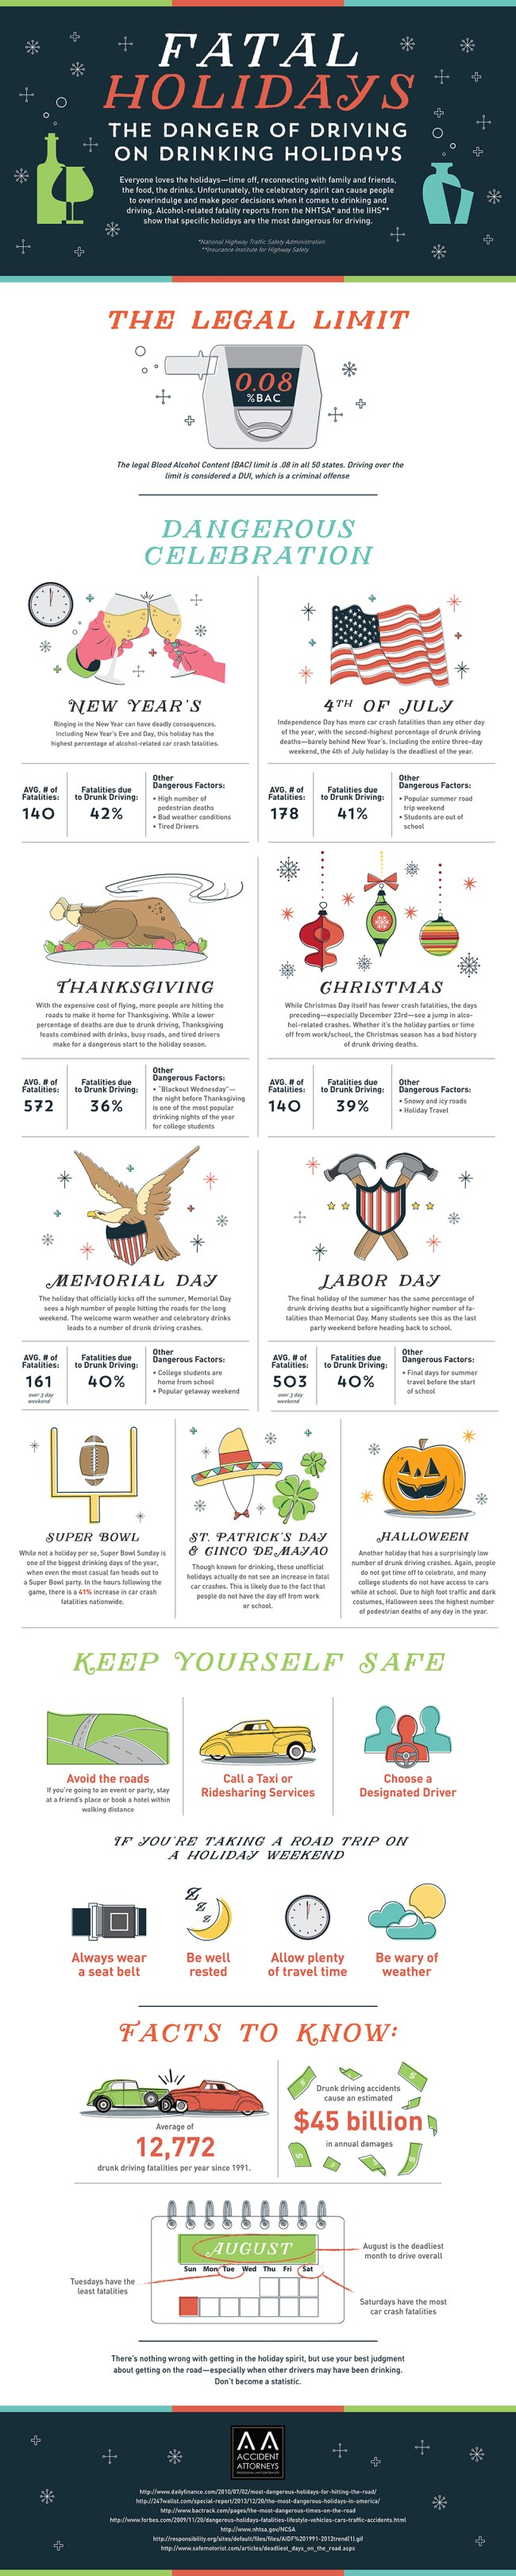 Drinking and Driving on the Holidays Statistics